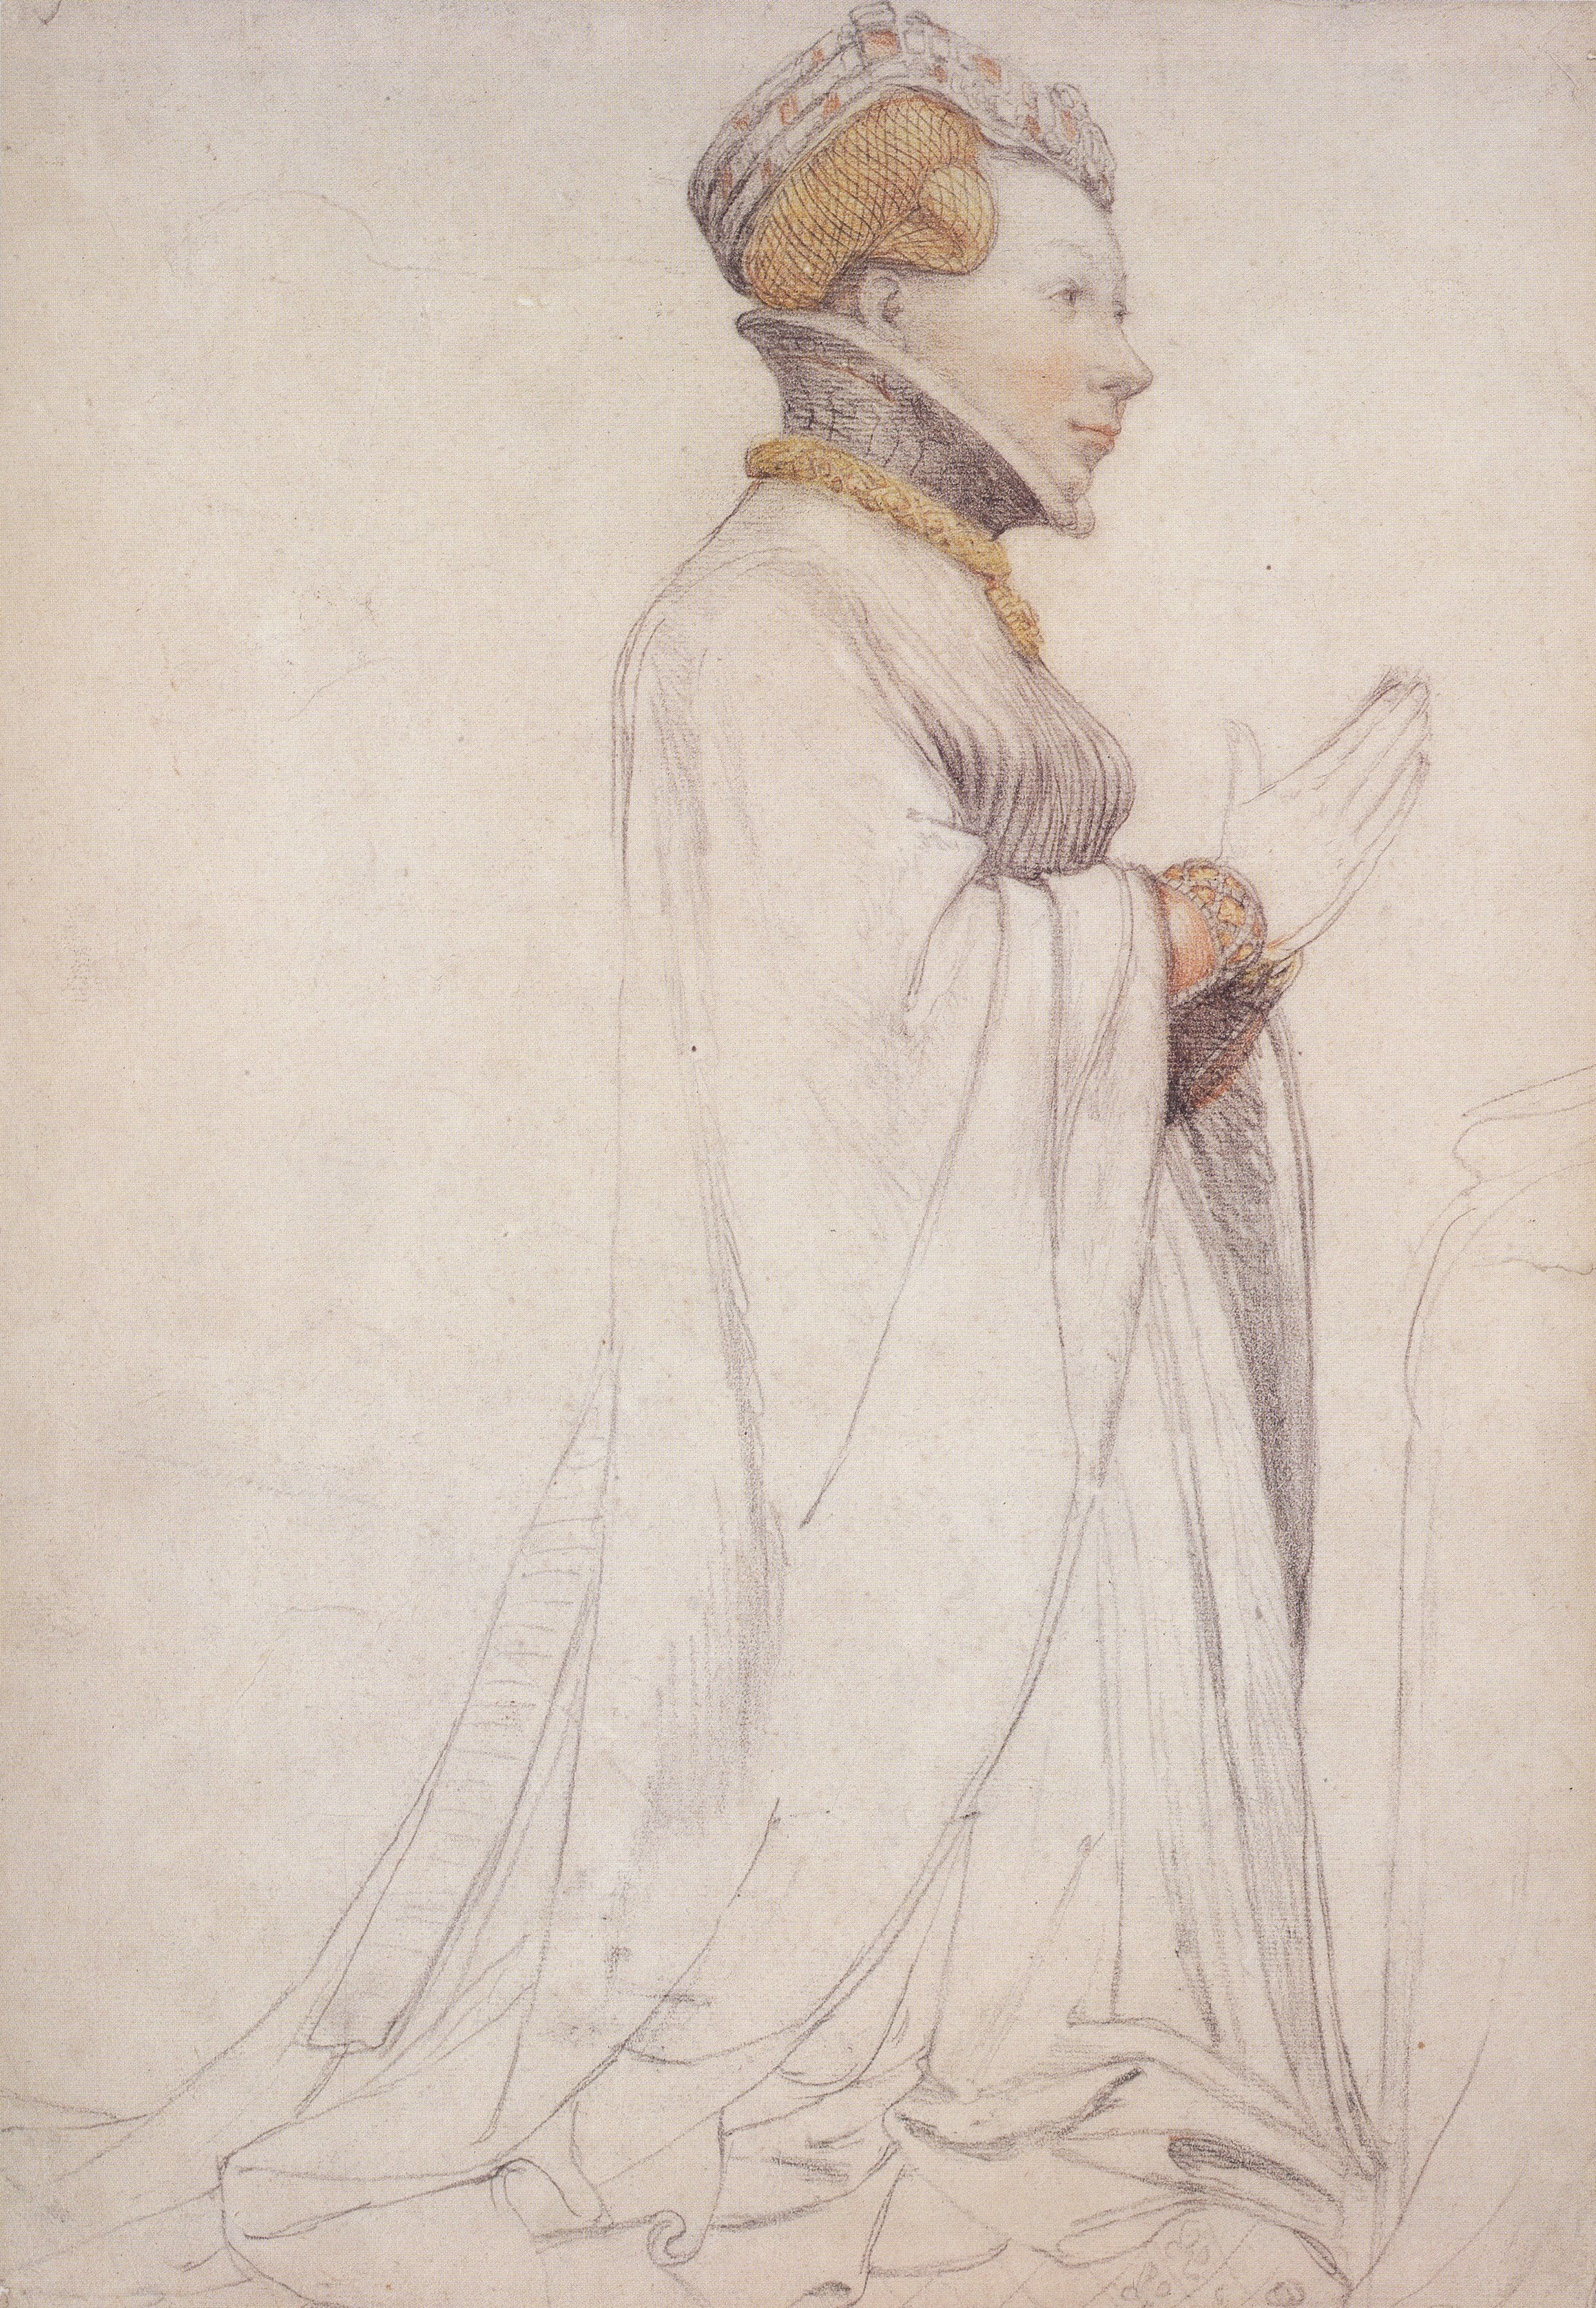 ean de Boulogne, Duchess of Berry, study of a sculpture by Jean de Cambrai. c.1523-24